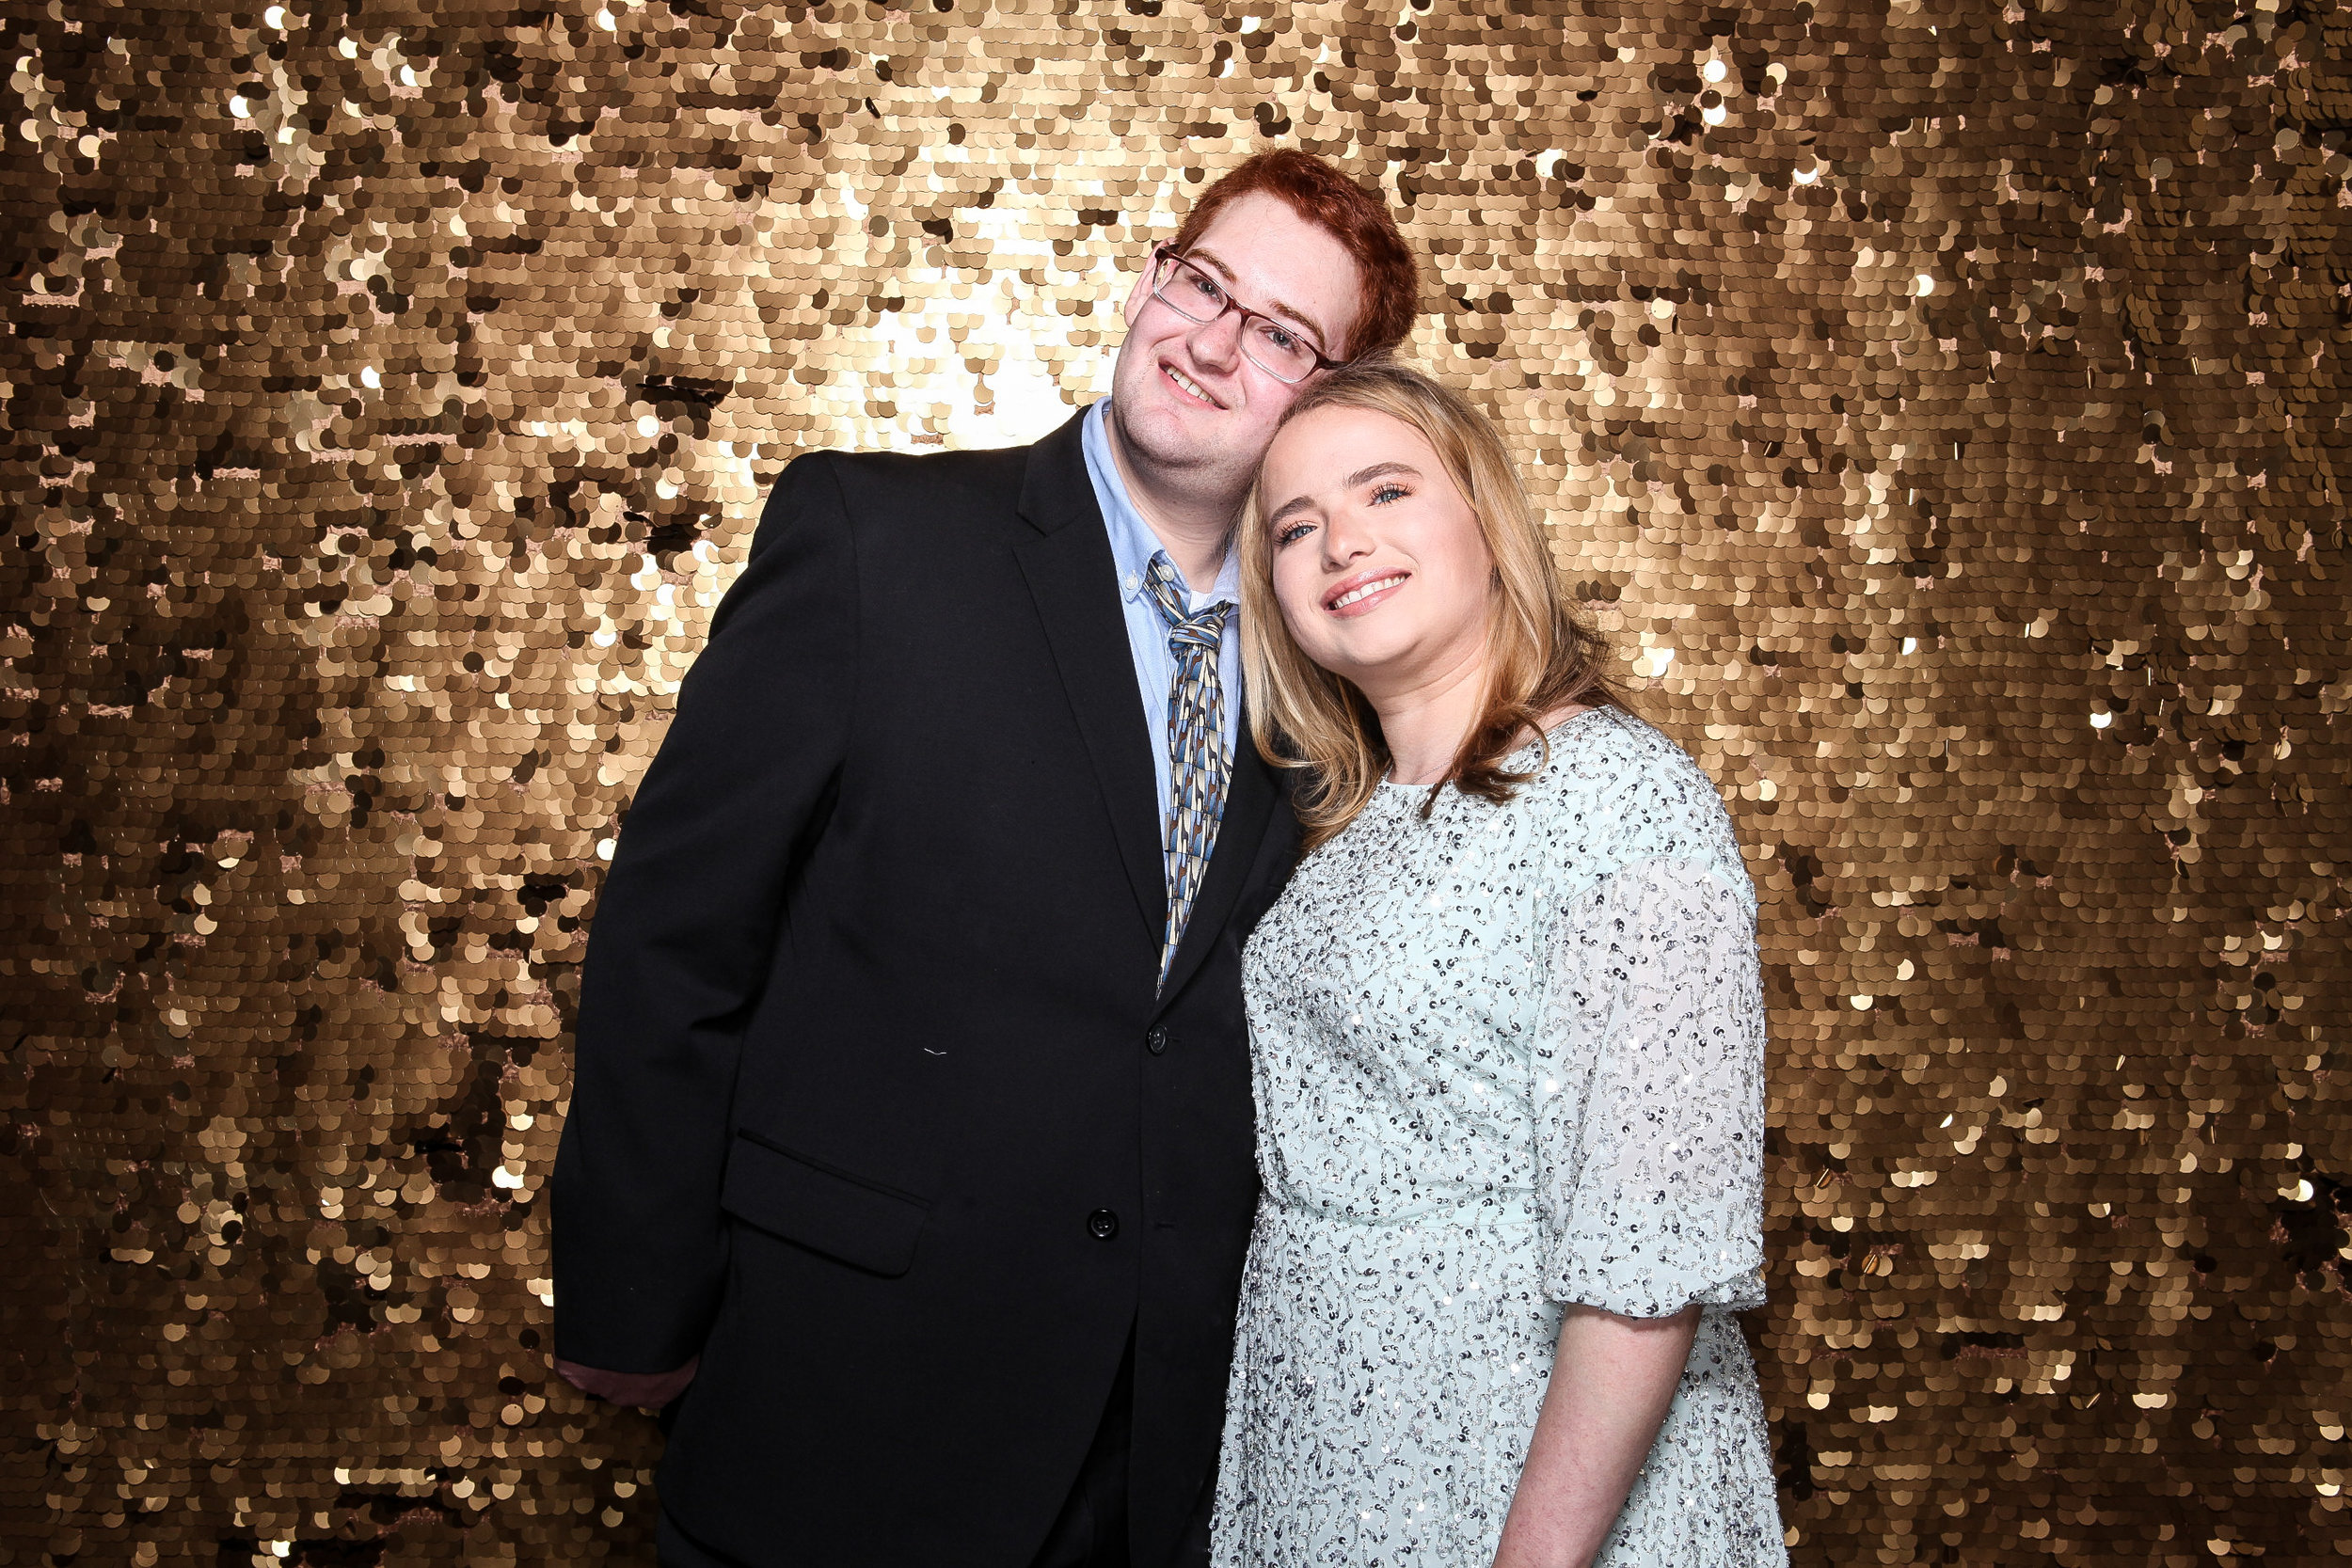 20190503_Adelphi_Senior_Formal-161.jpg